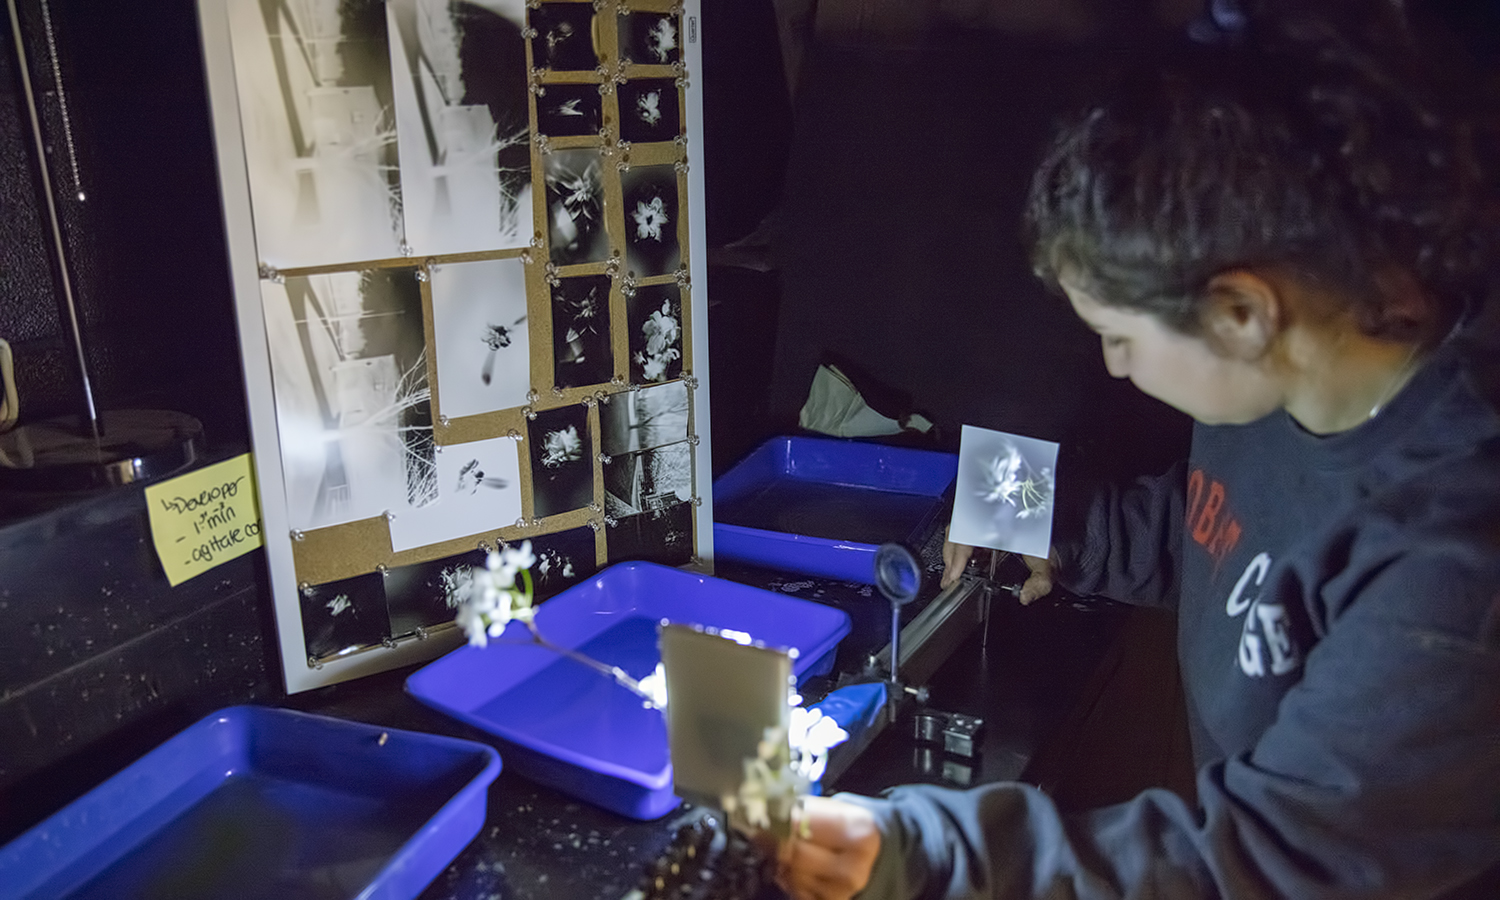 Tzipora Glaser 'X works a pinhole camera in the darkroom of Gulick Hall.